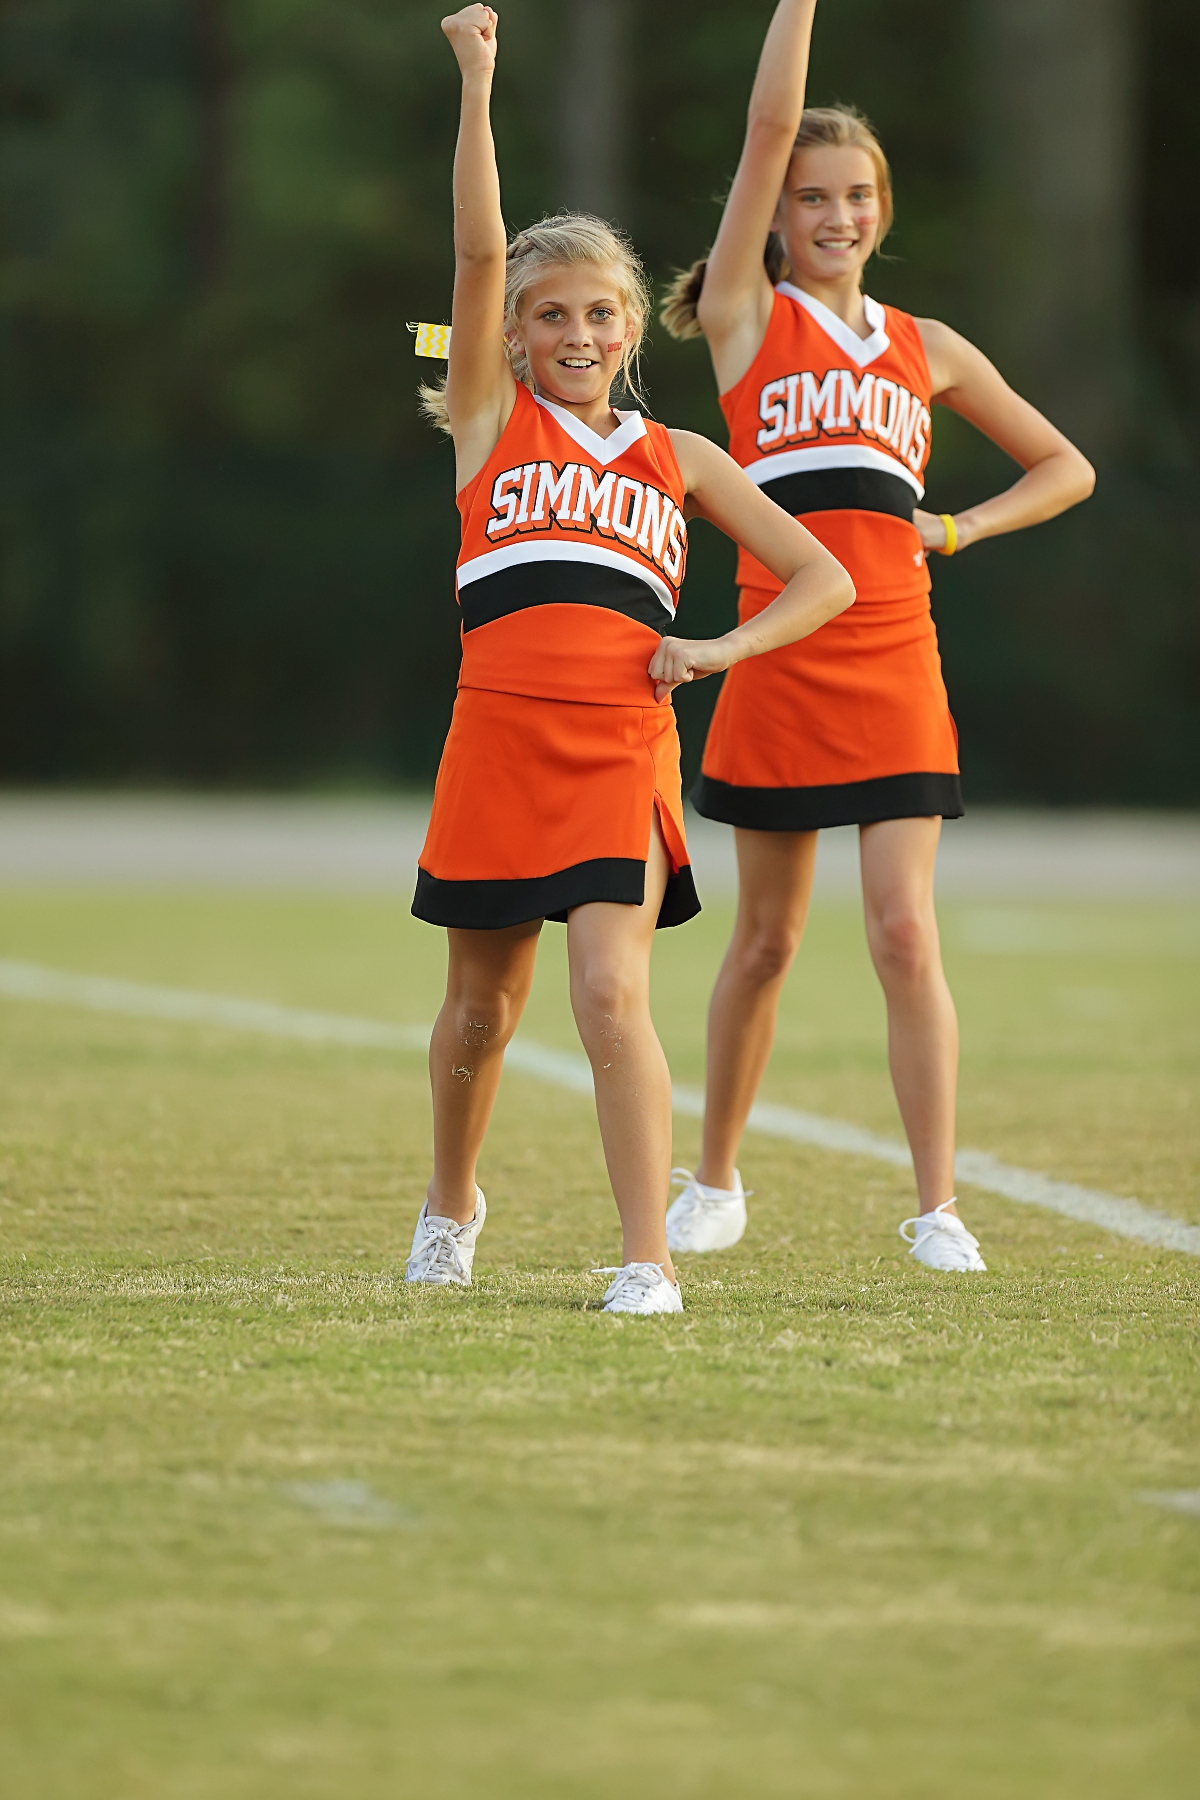 This picture is of 2 7th grade cheerleaders during a football game.